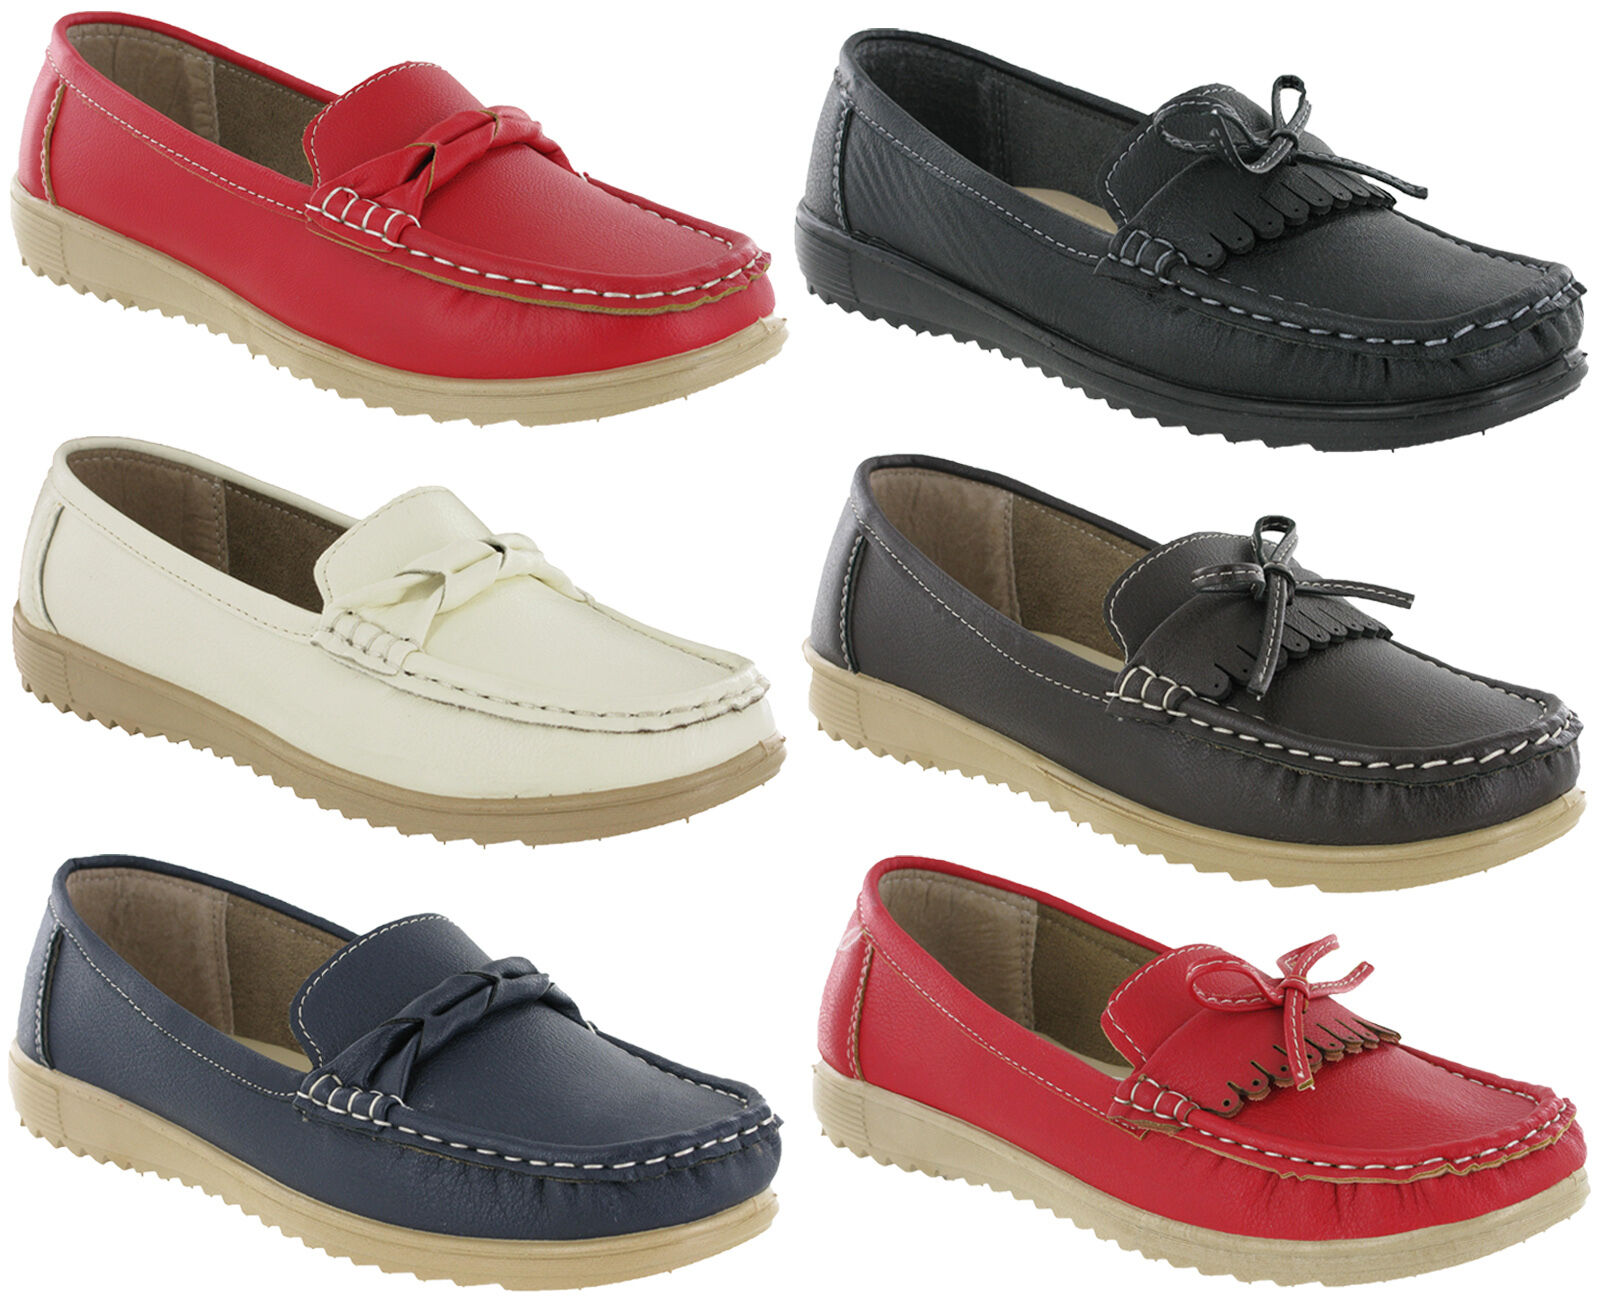 Amblers Moccasin Holiday Slip On Loafer Deck Flat Summer Holiday Moccasin Casual Womens Shoes 9ada08